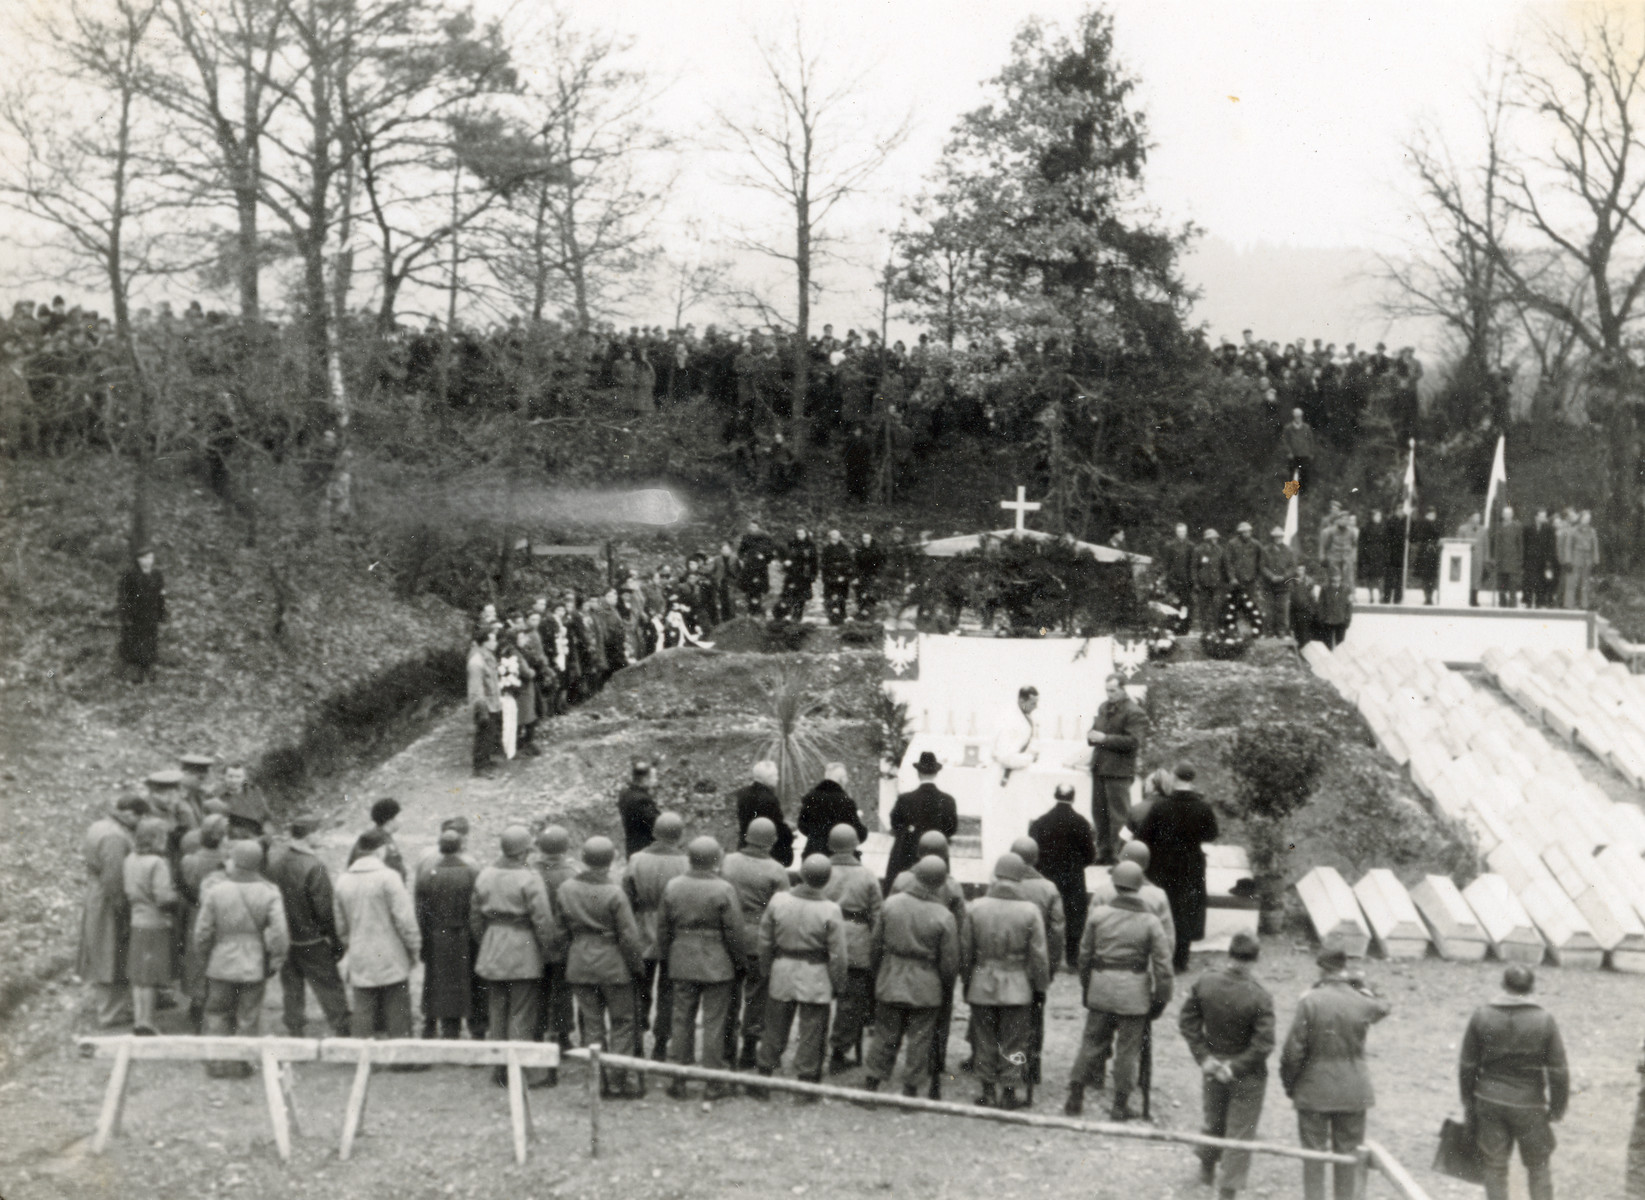 A priest conducts a service during the exhumation and reburial of Christian victims of the Pocking concentration camp attended by survivors and American soldiers.